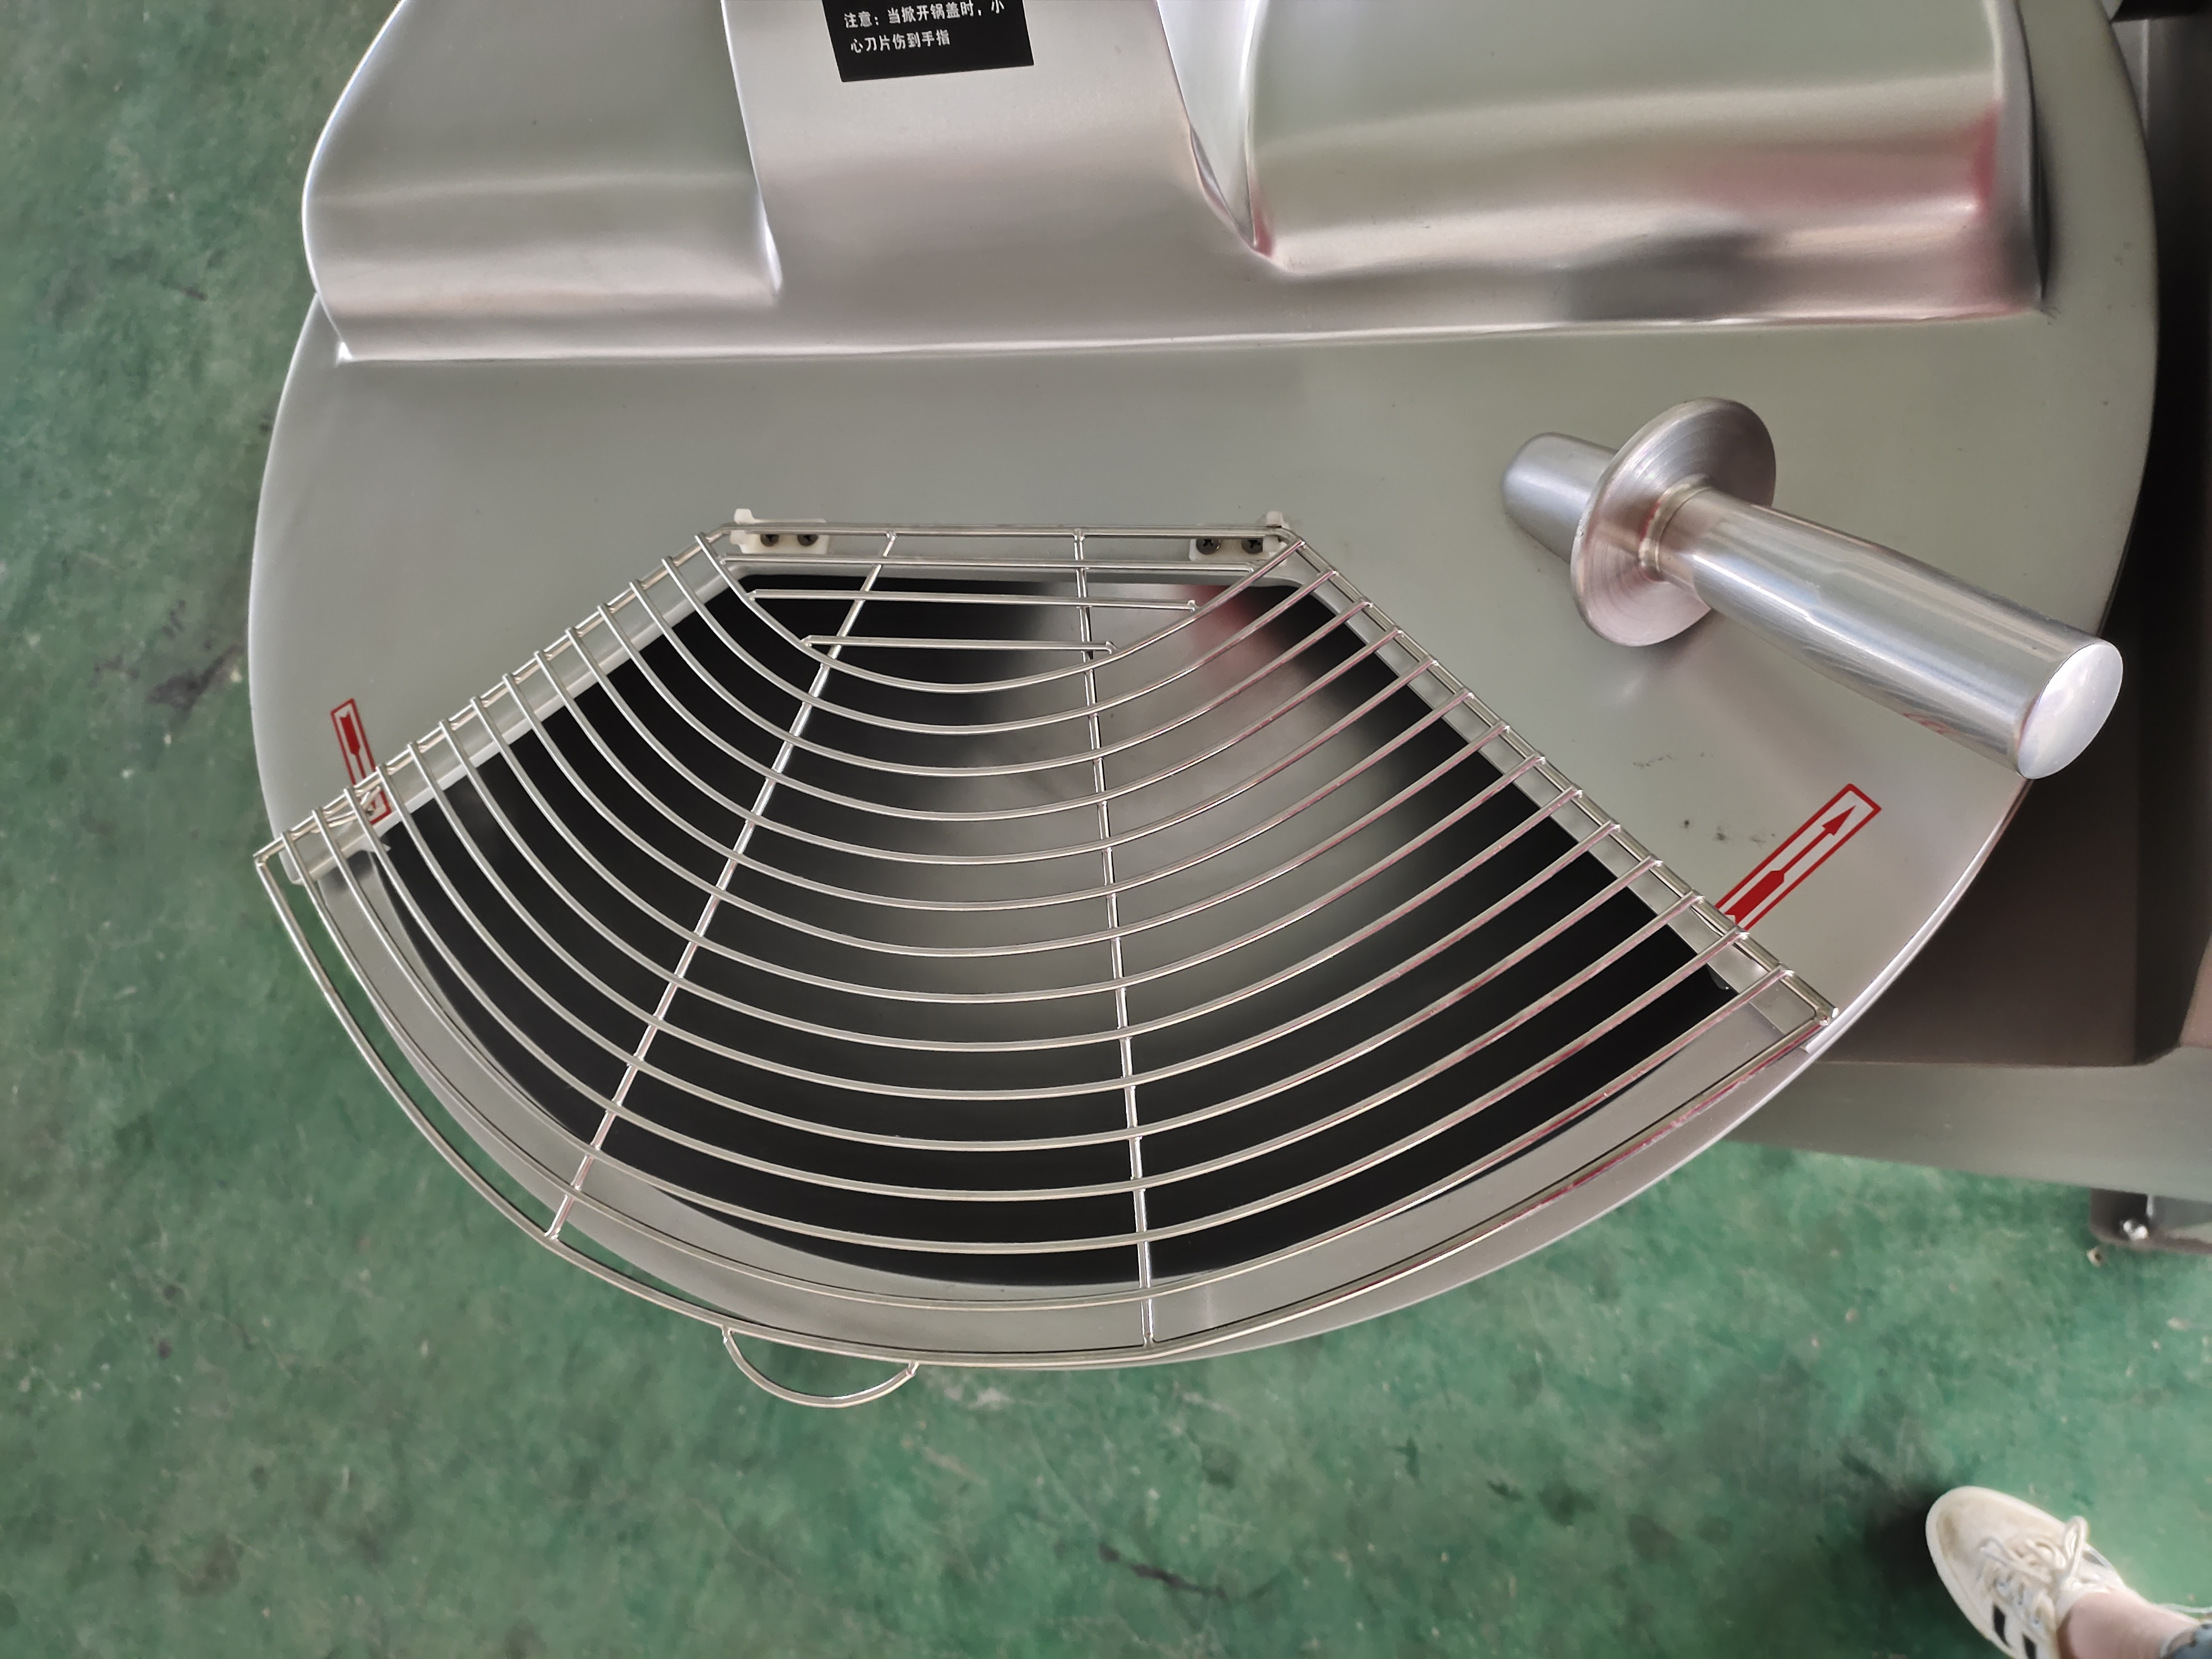 Commercial Meat Silent Cutter Bowl Cutter GRT-HLQ20L